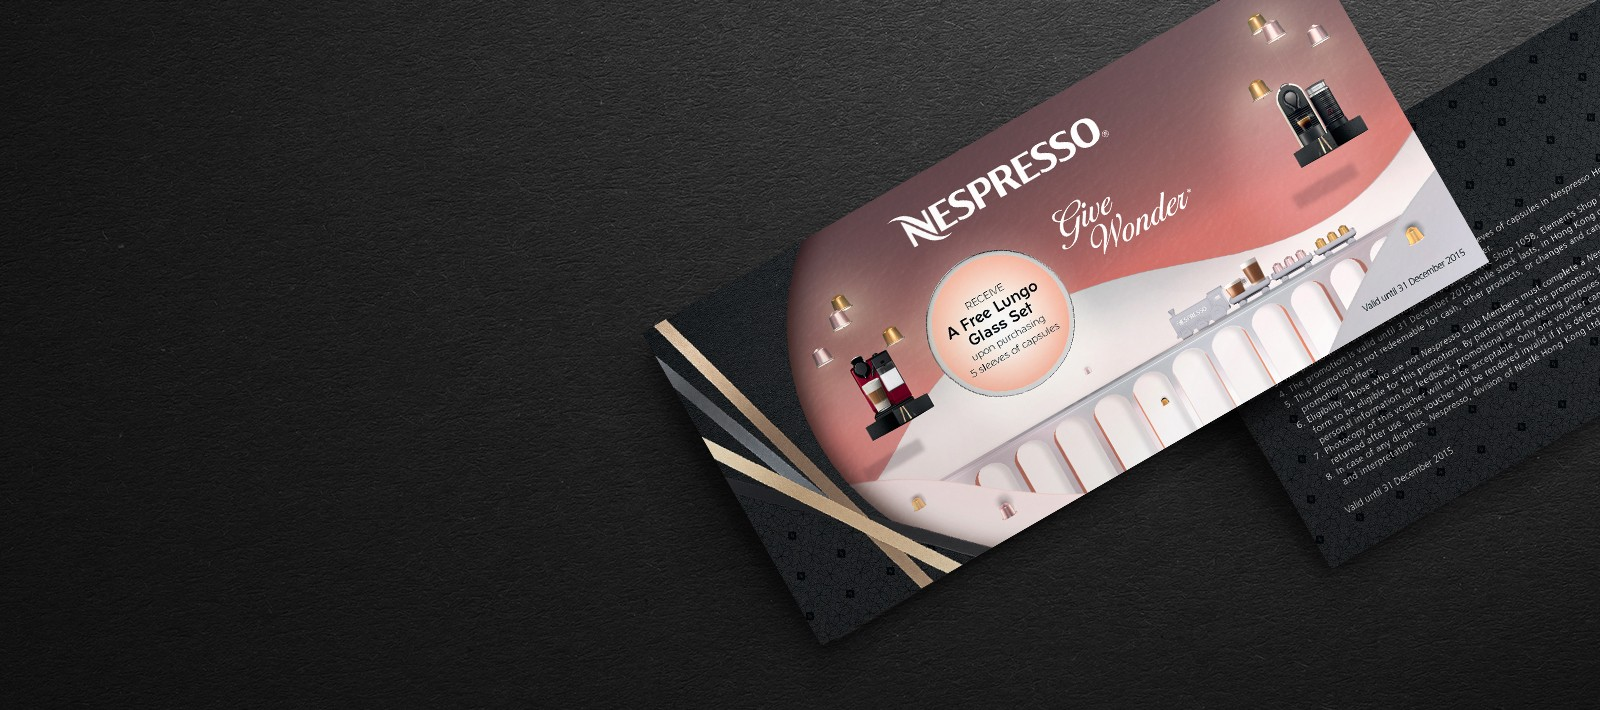 Integrated marketing for Nespresso